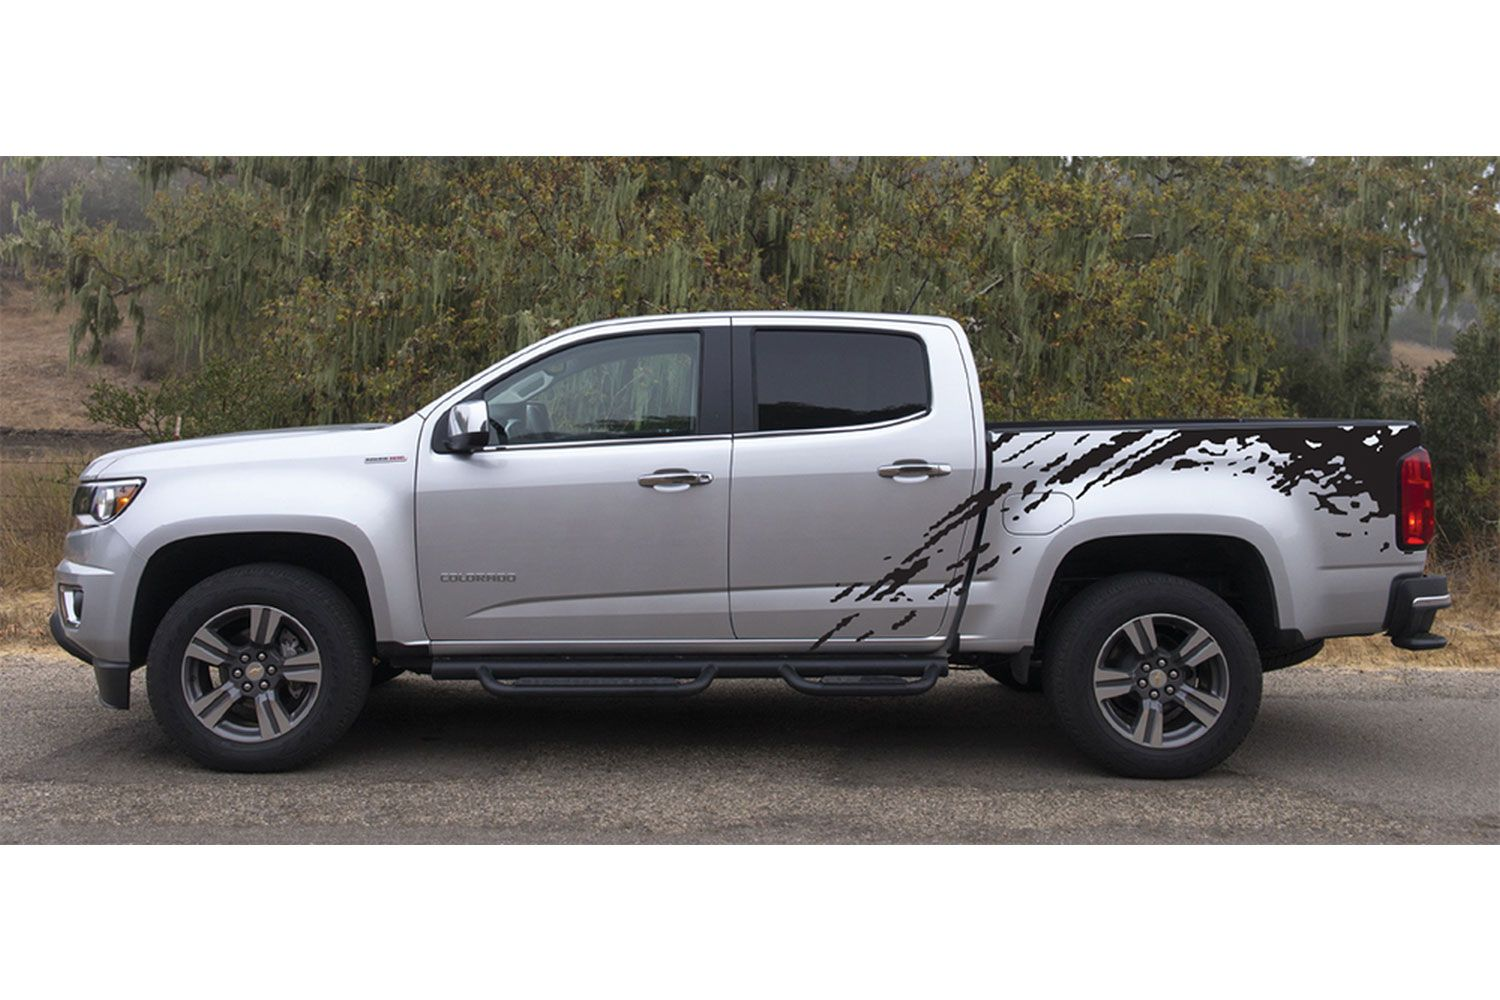 Predator chevy colorado mudslinger truck bed vinyl decal graphic stripes